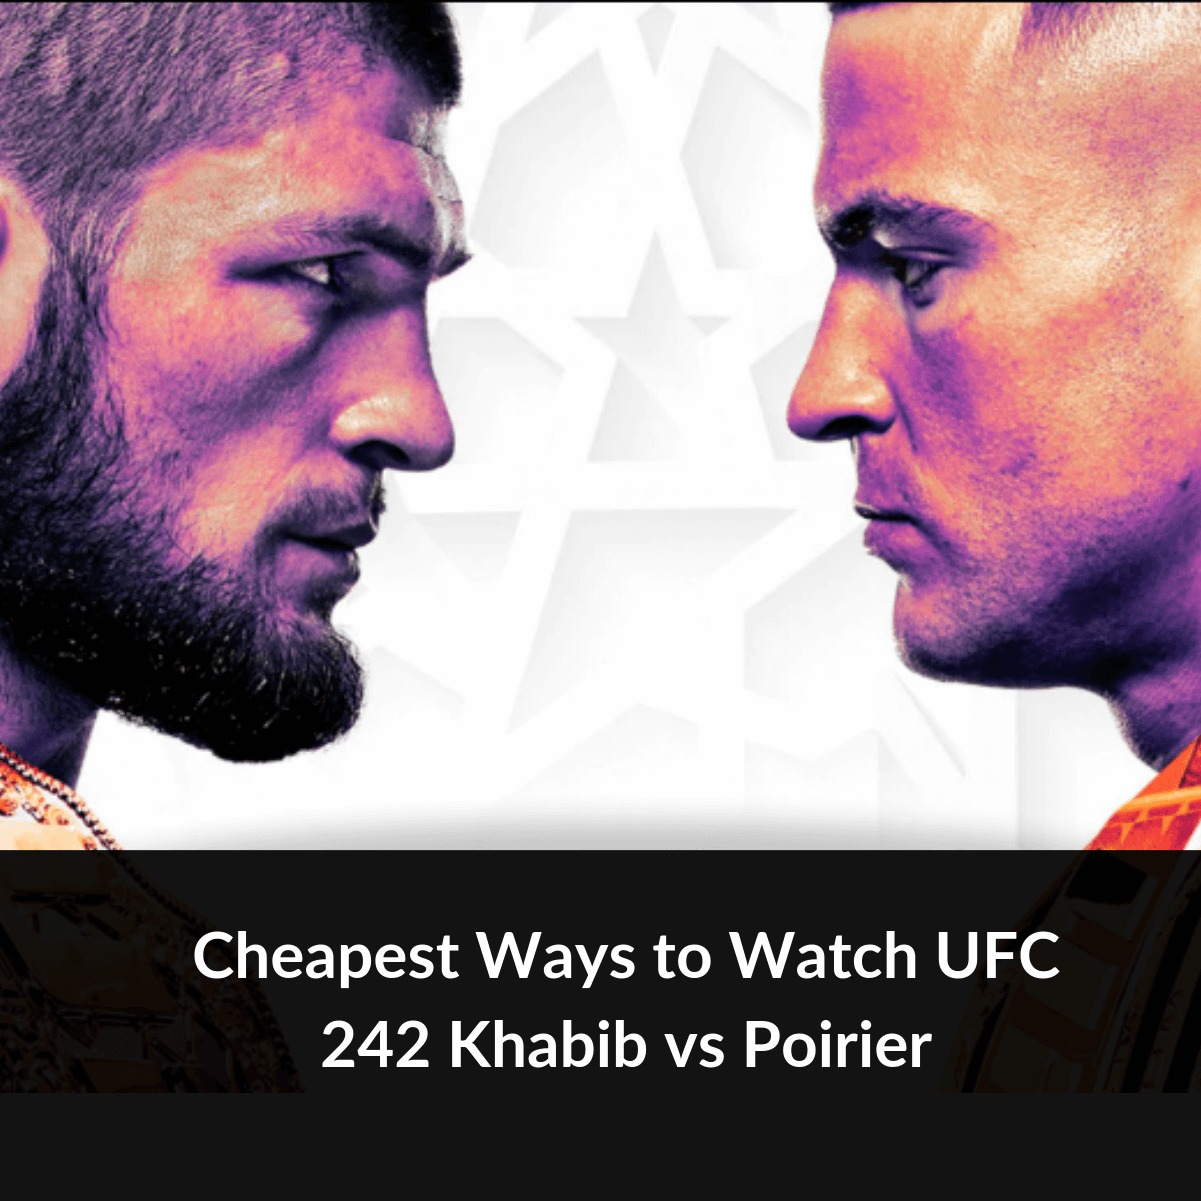 Cheapest Ways To Watch Ufc 242 Khabib Vs Poirier Live